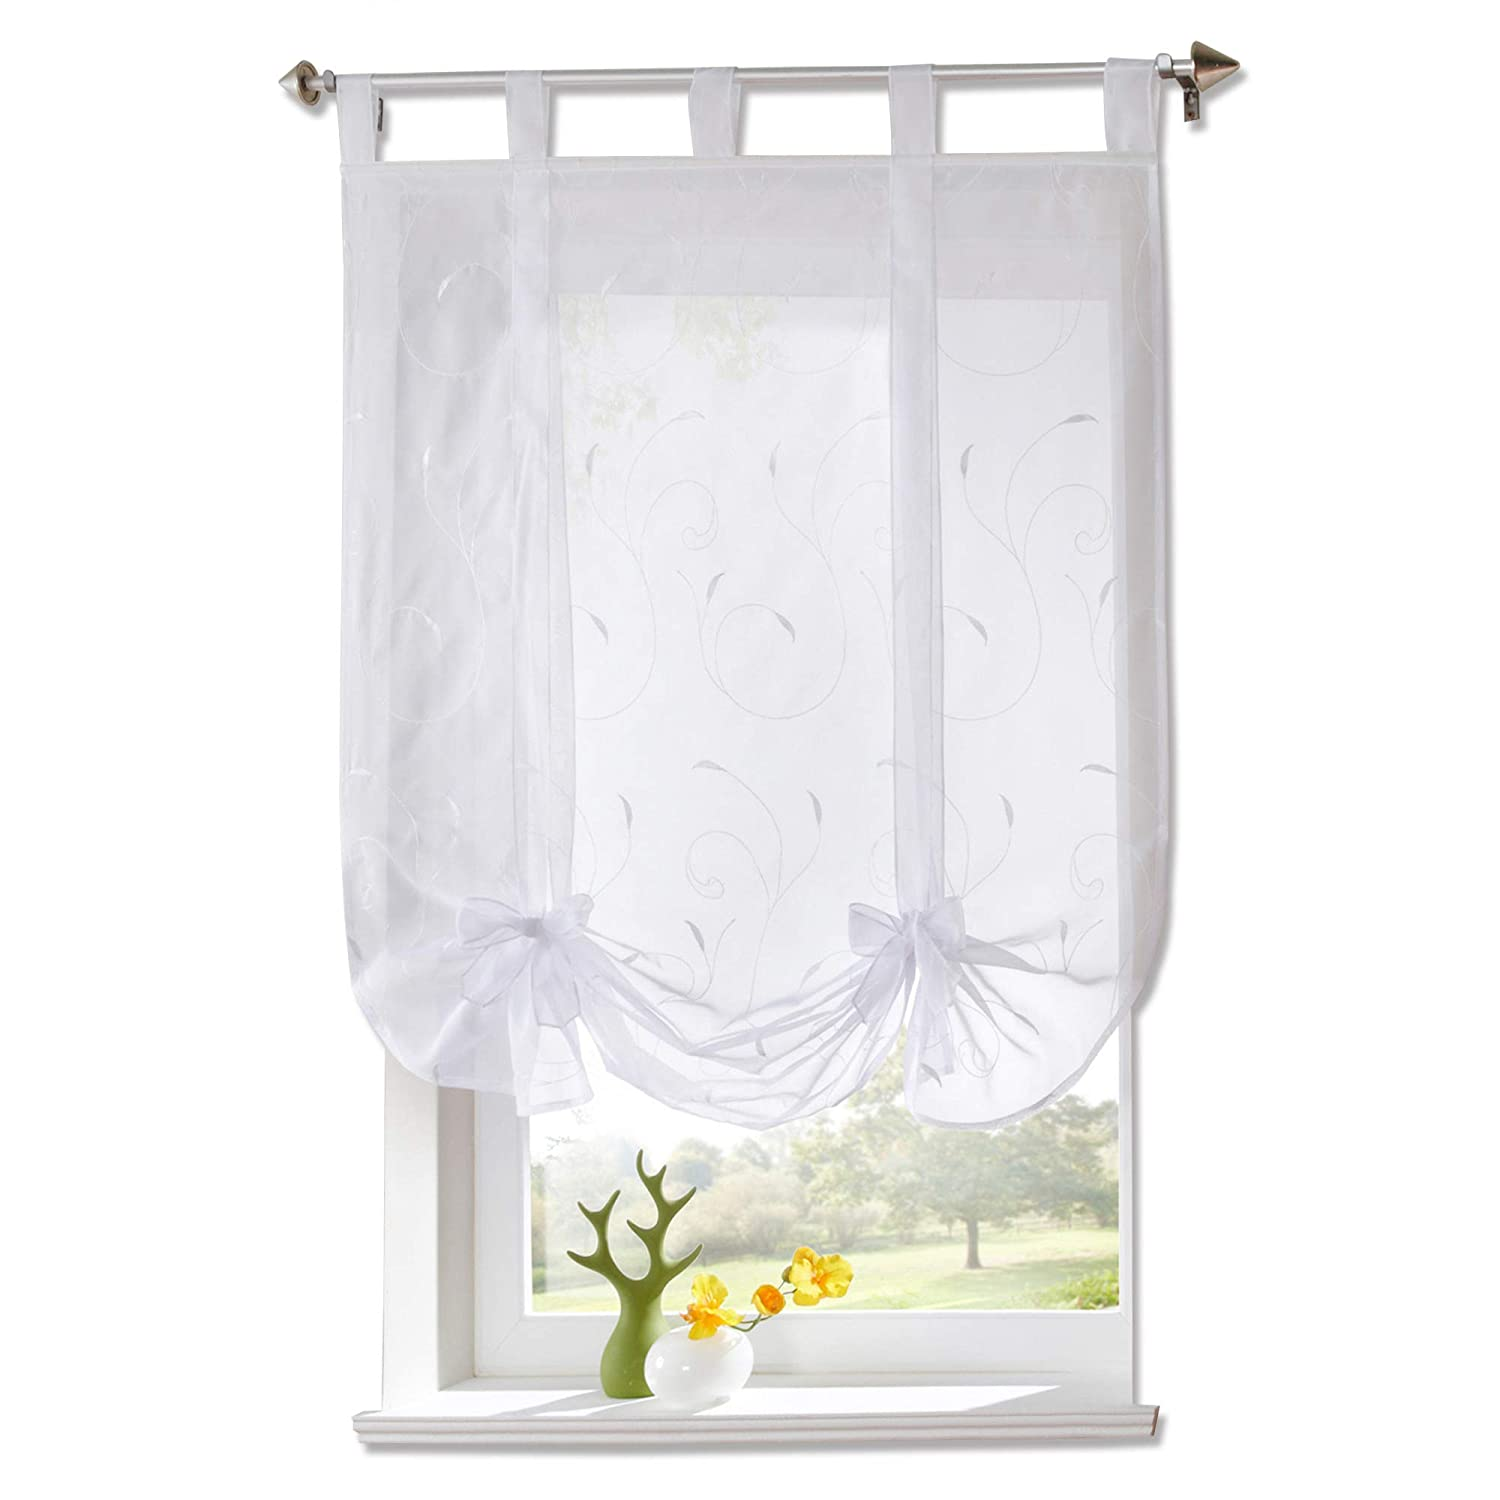 Fyore 1 Pcs Embroidery Roman Shade Tie-up Window Curtain White Valance for Home Décor (White 39x55inch) Canyore